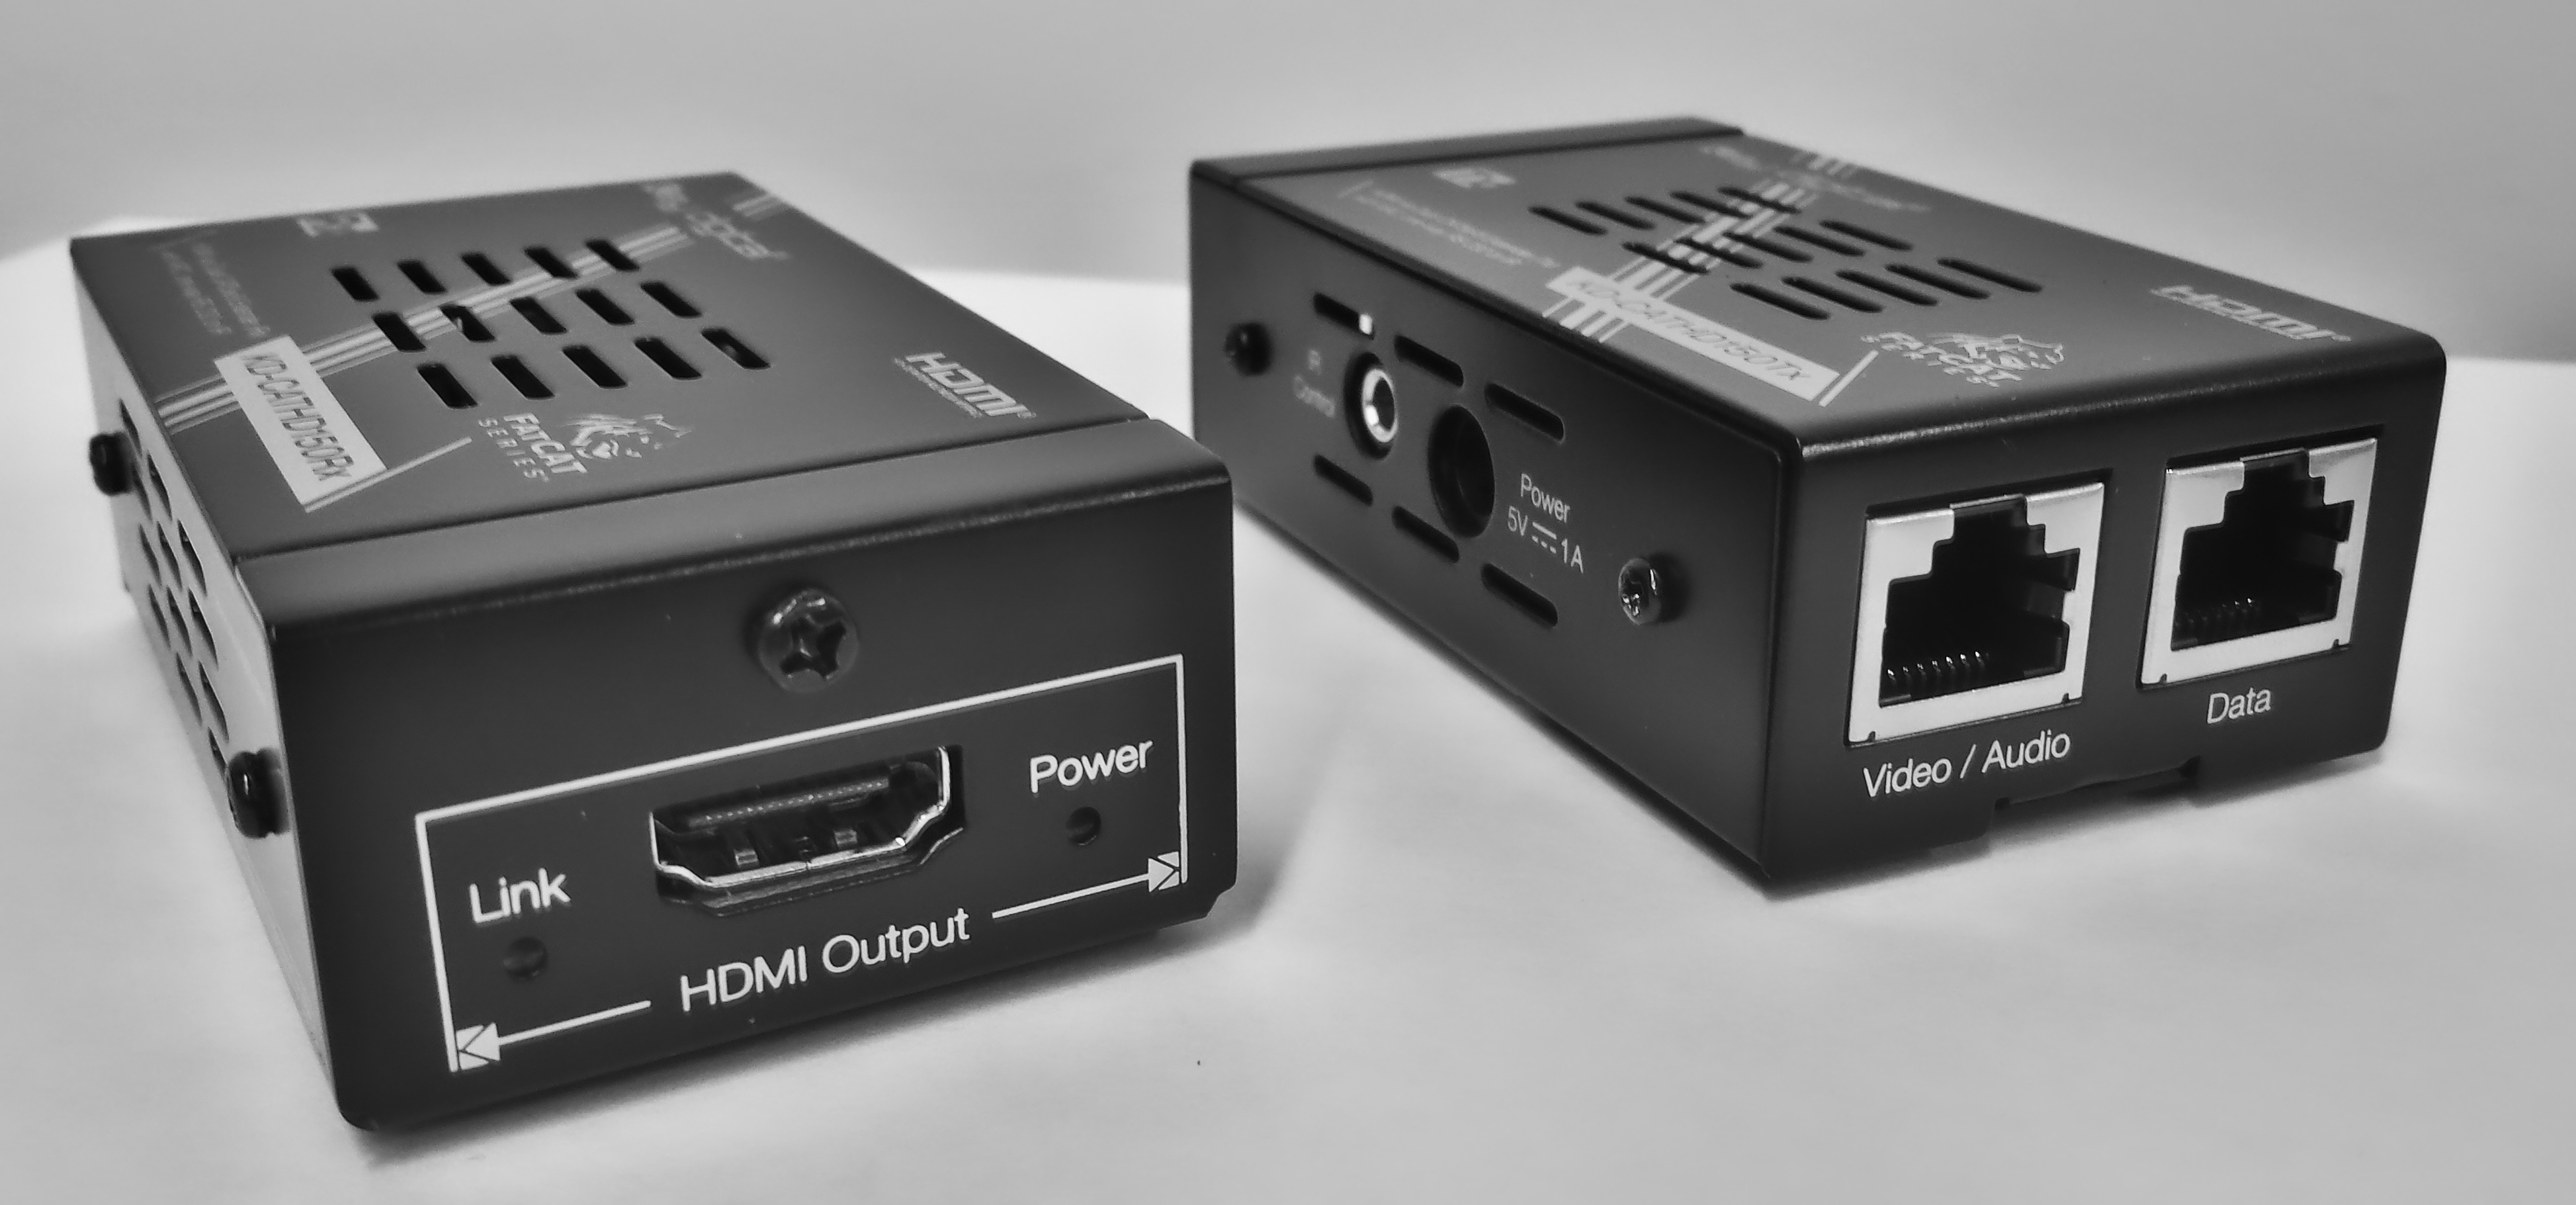 HDMI Extenders: The real reason why you should never pre-wire with HDMI.